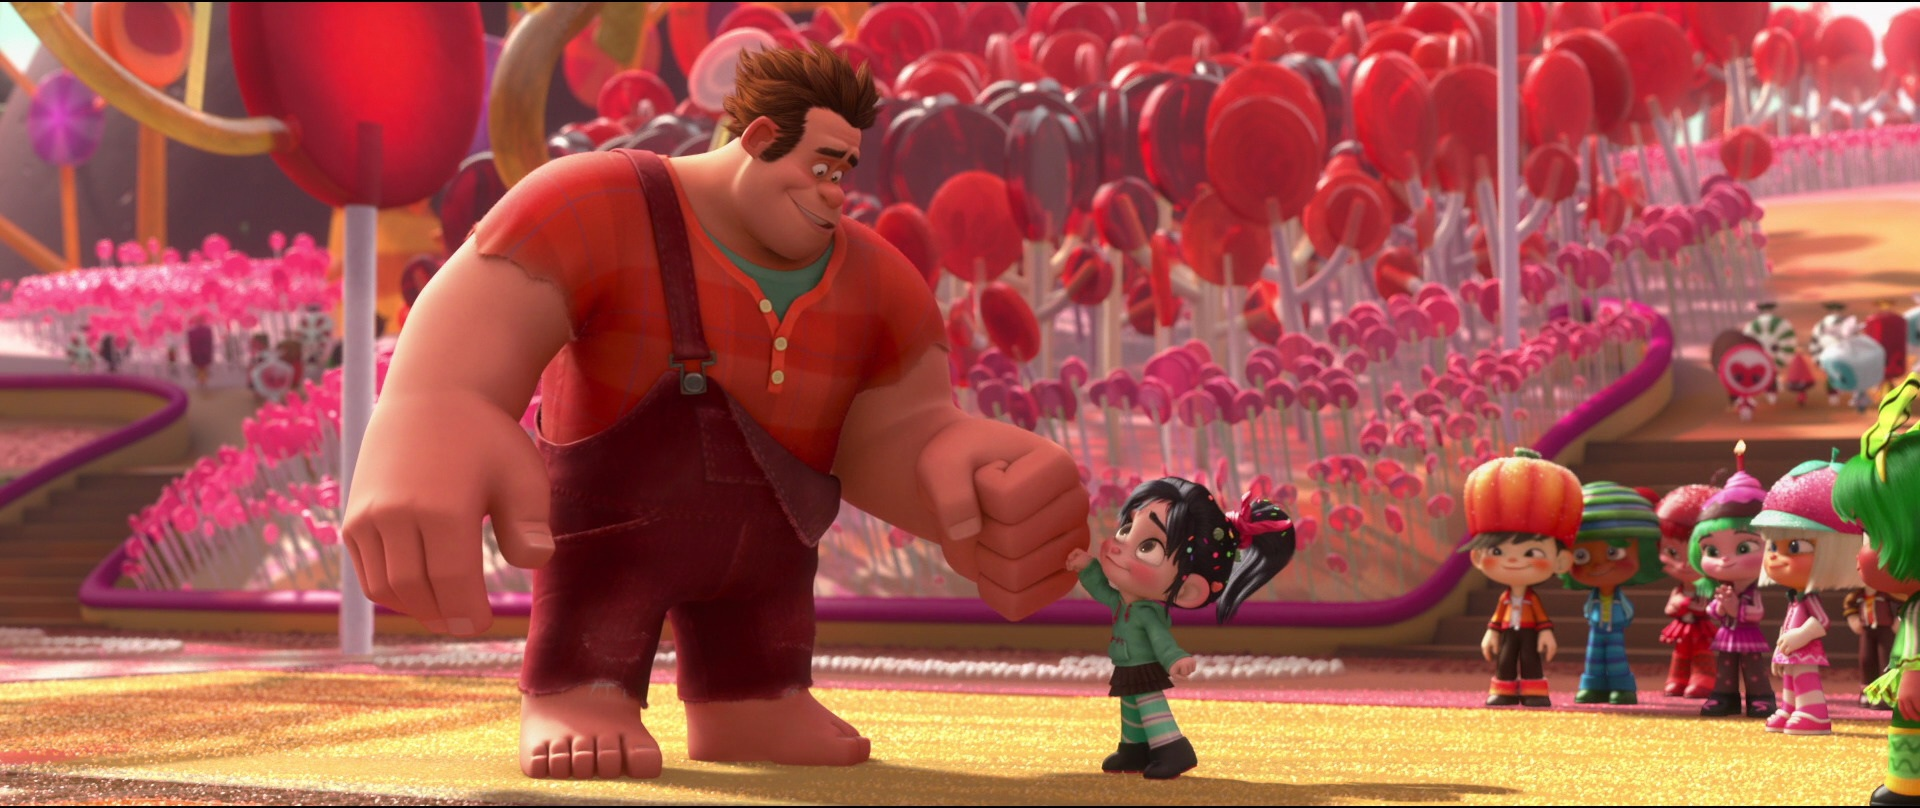 http://vignette2.wikia.nocookie.net/disney/images/2/2e/Wreck-it-ralph-disneyscreencaps.com-10766.jpg.jpg/revision/latest?cb=20131030172850